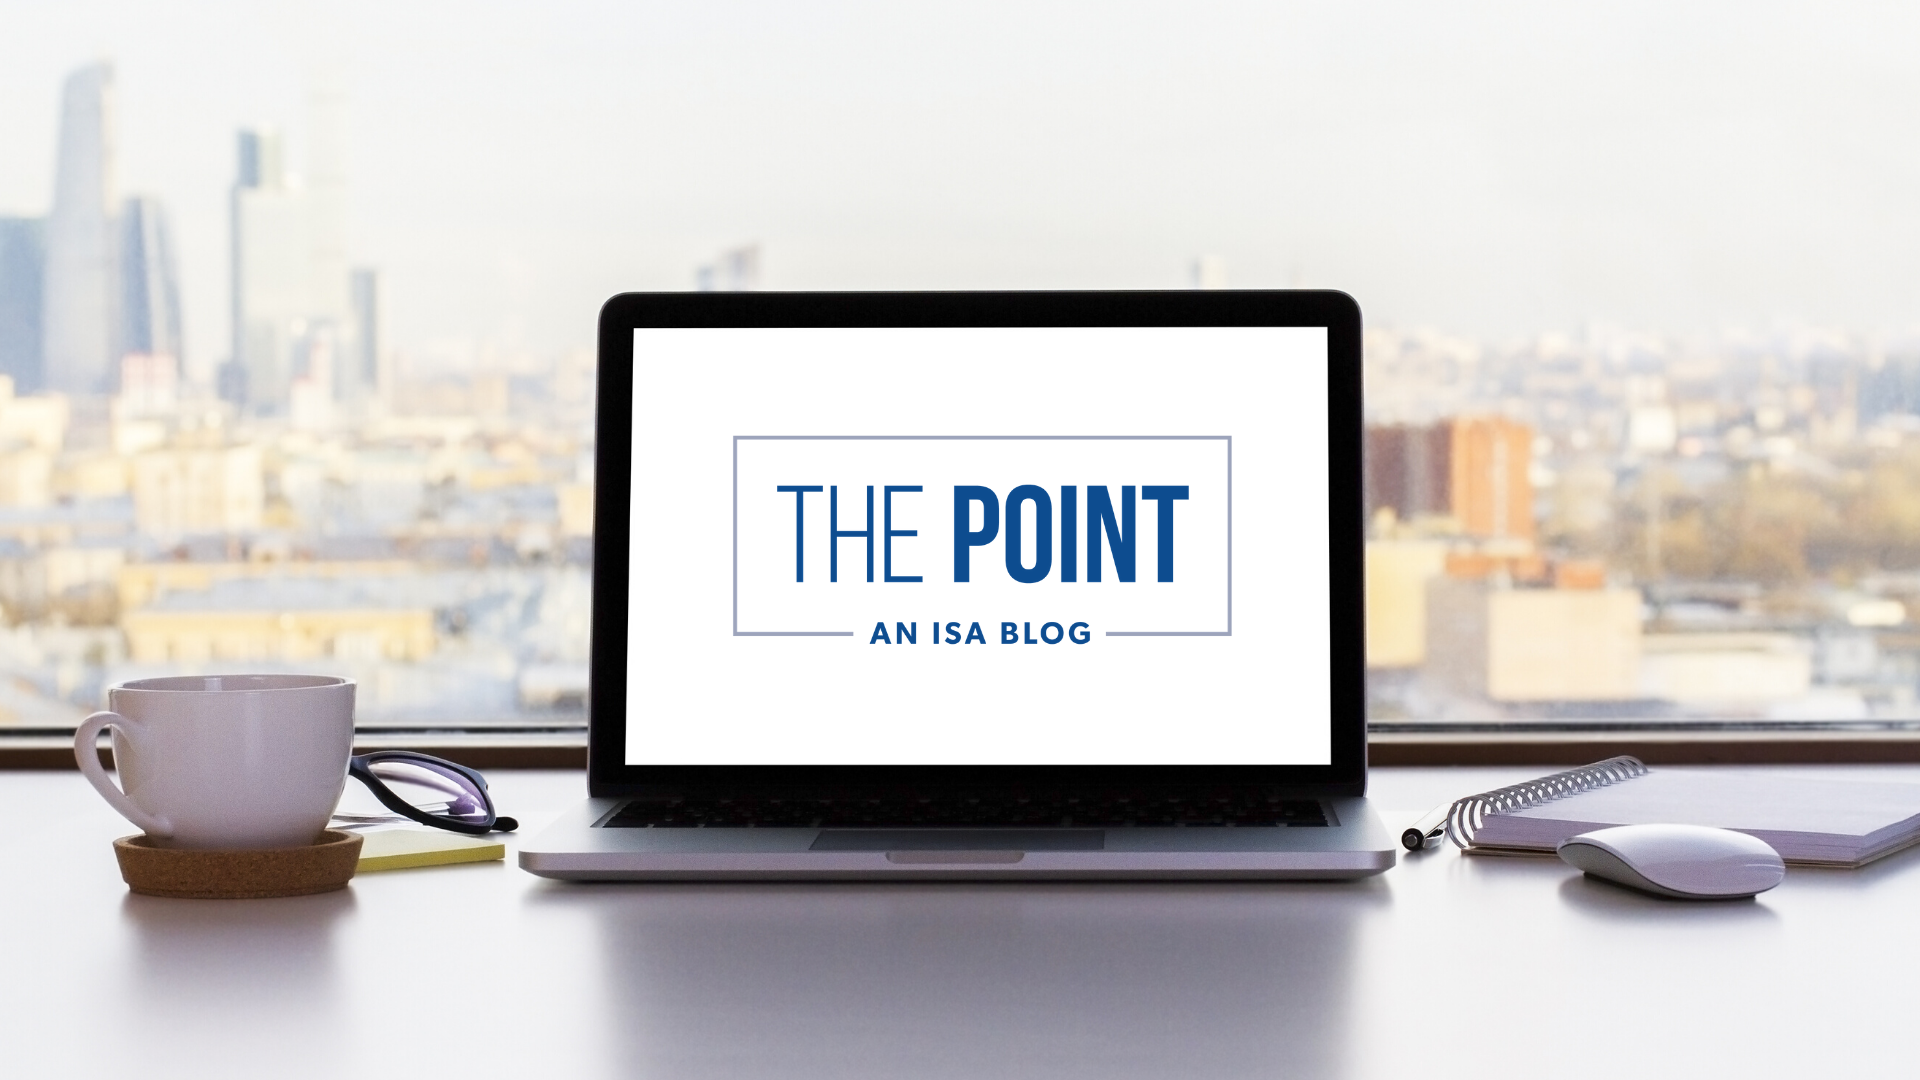 Welcome to the Point. An ISA blog.